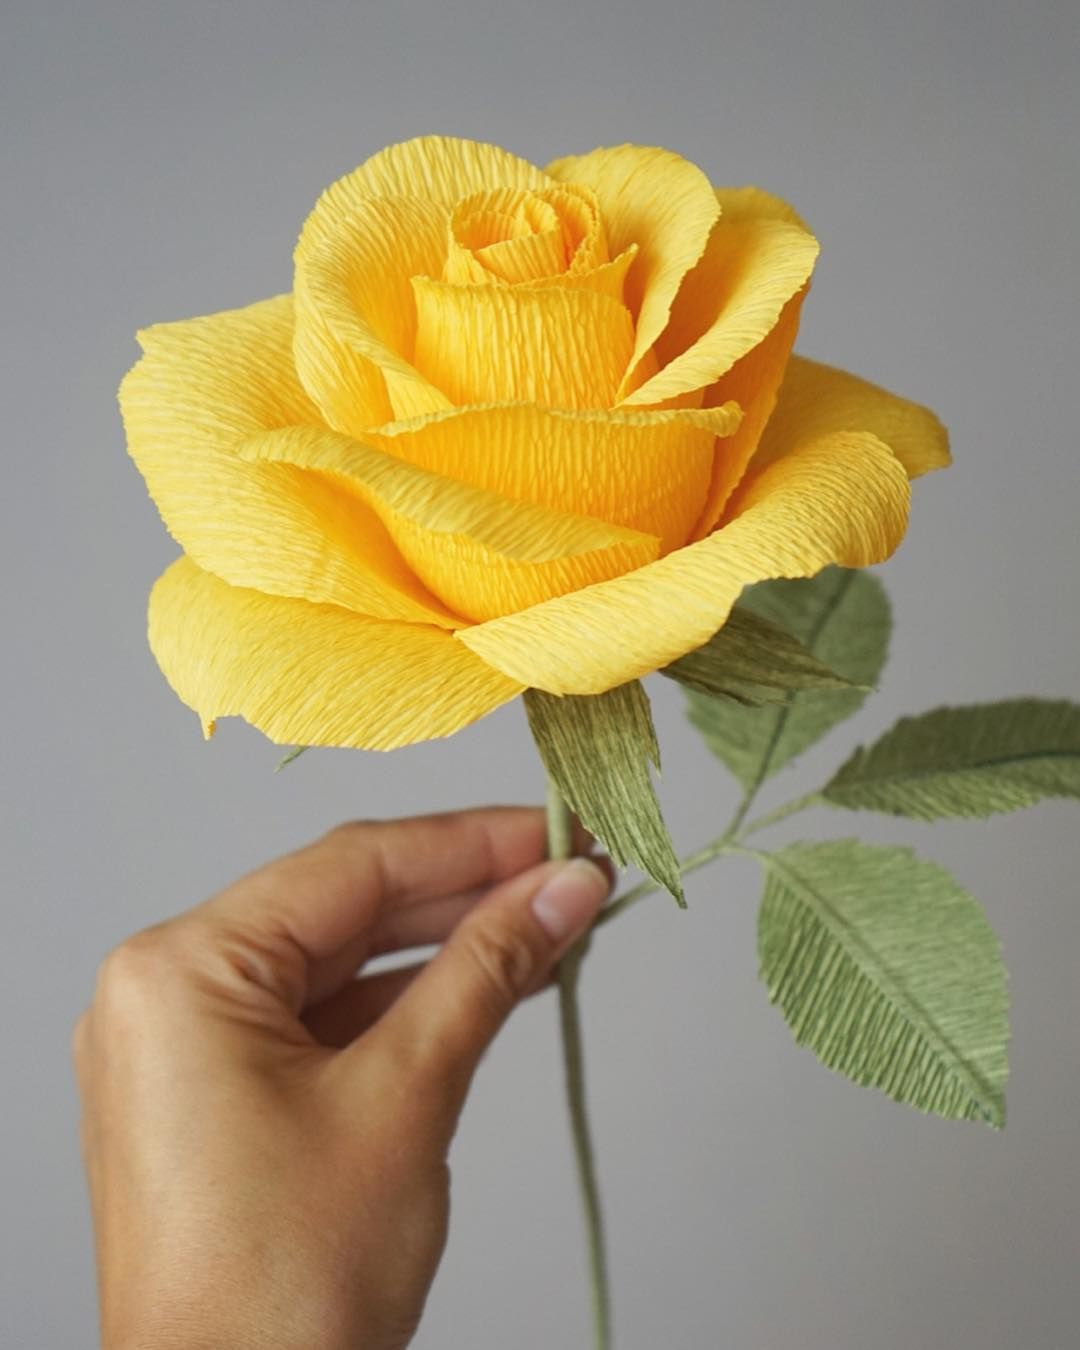 How do you like our new crepe paper rose?